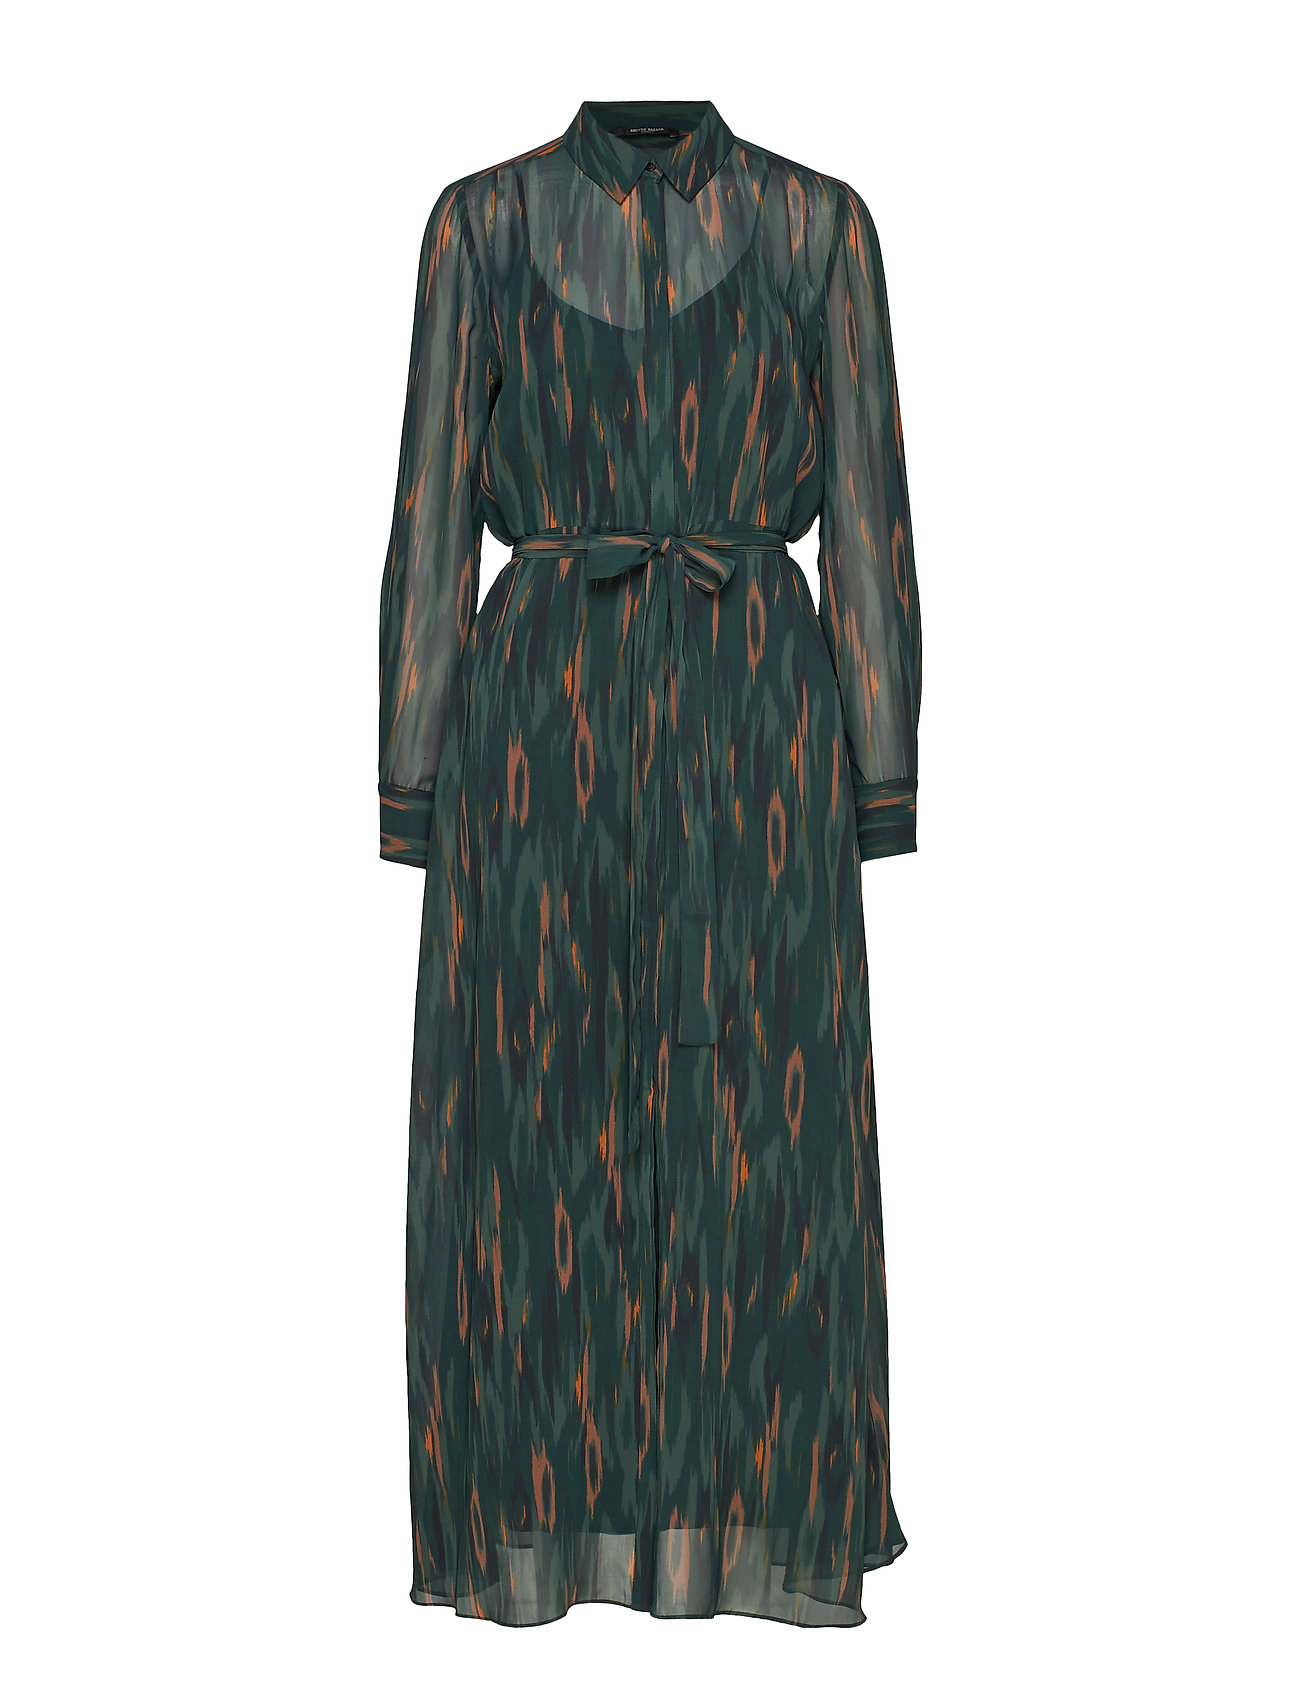 Bruuns Bazaar Camou Cora Dress - DEEP FOREST - CAMOU ARTWORK